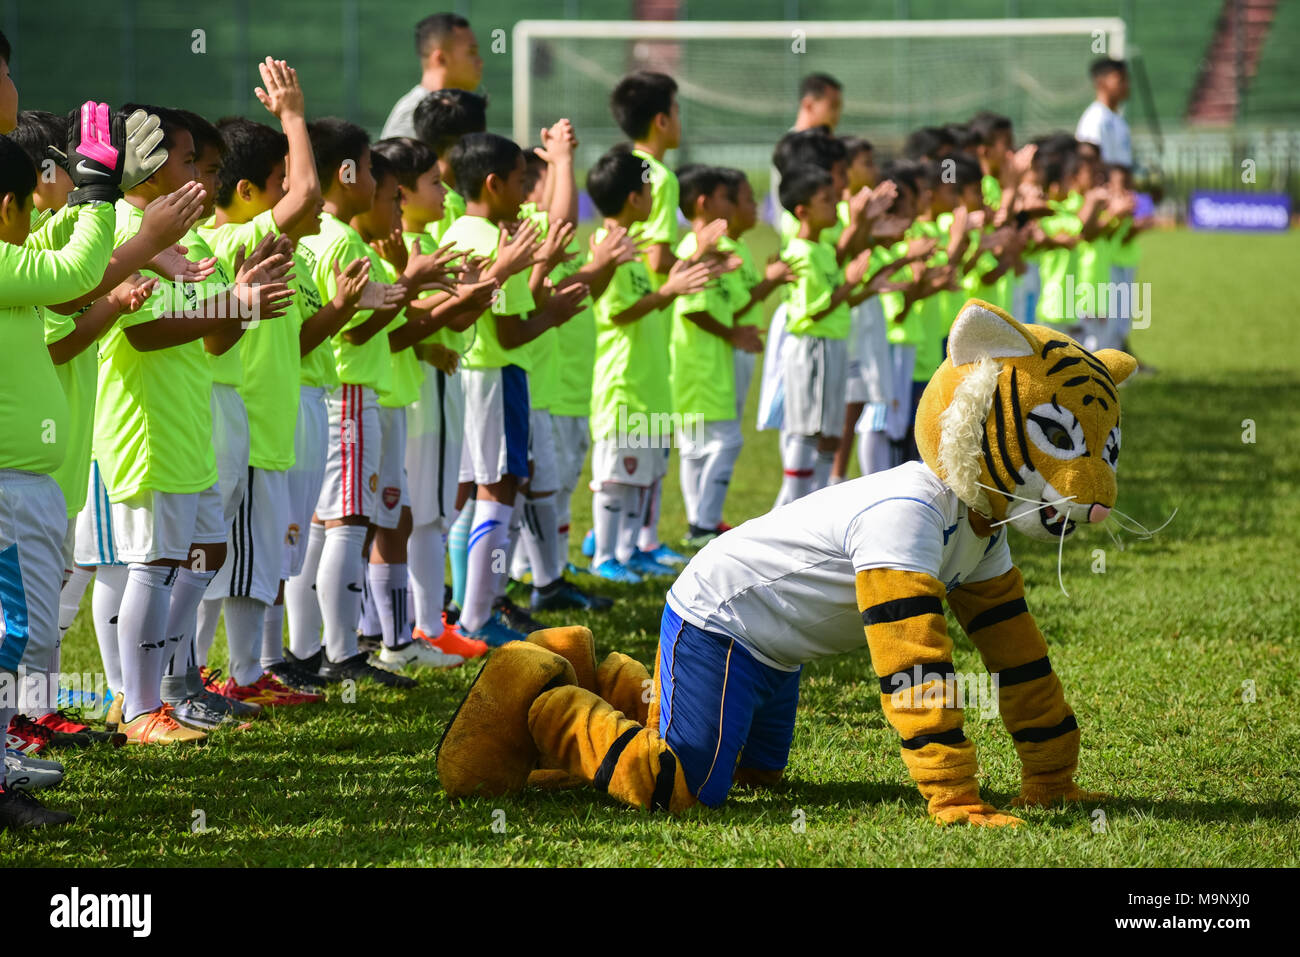 Football academy trainees greet audience before an exhibition match against five players of Persib Bandung to celebrate the club's 85th anniversary. Stock Photo